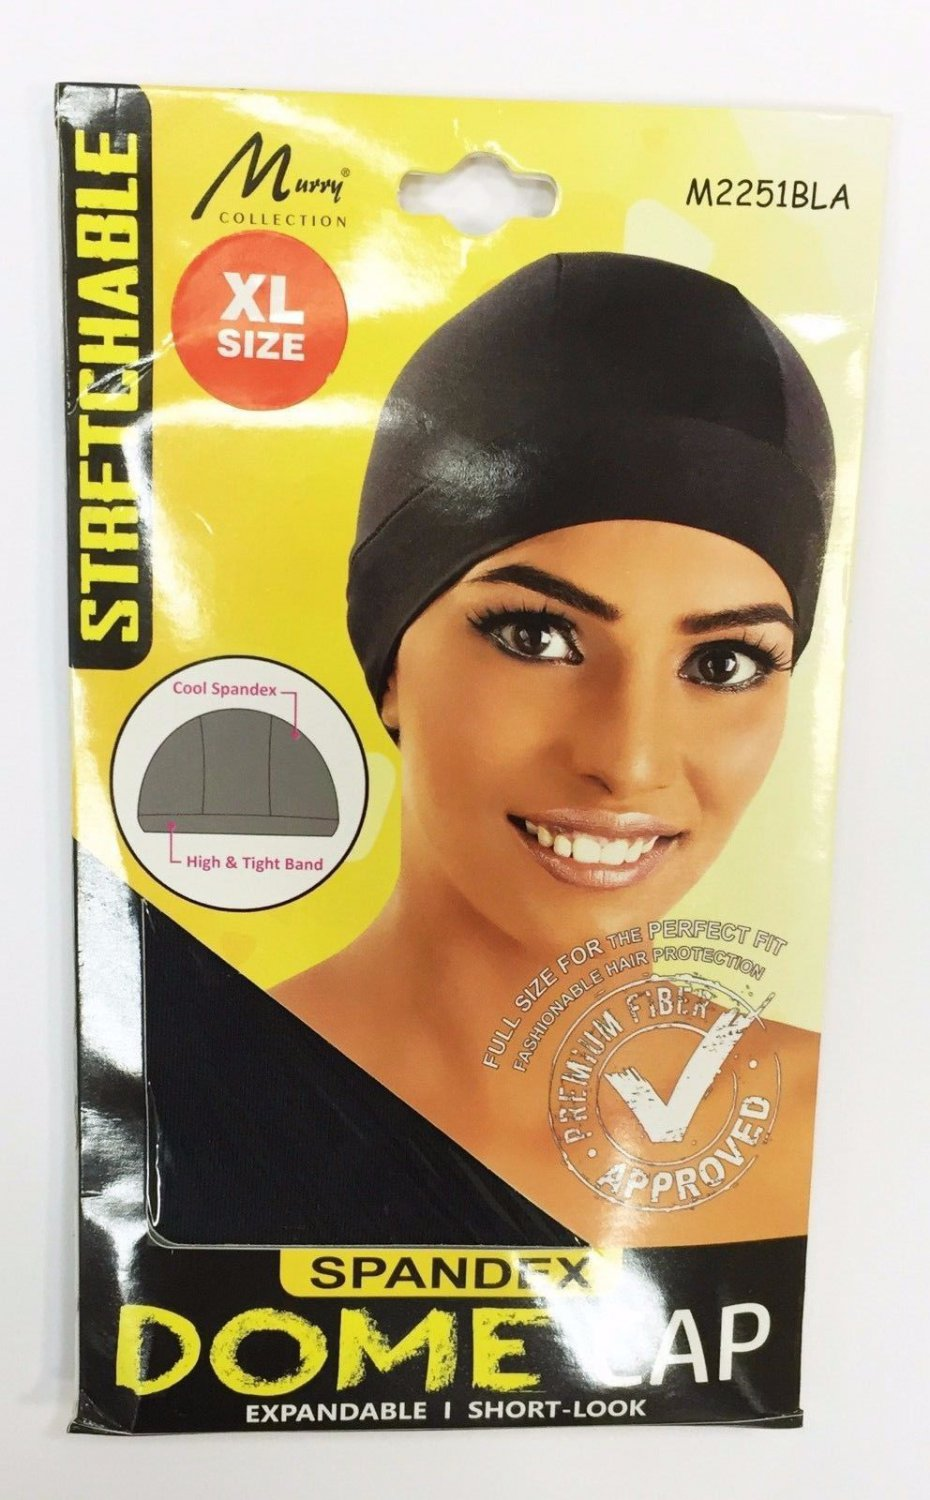 Murry Collection Stretchable Spandex Dome Cap-M2251BLA